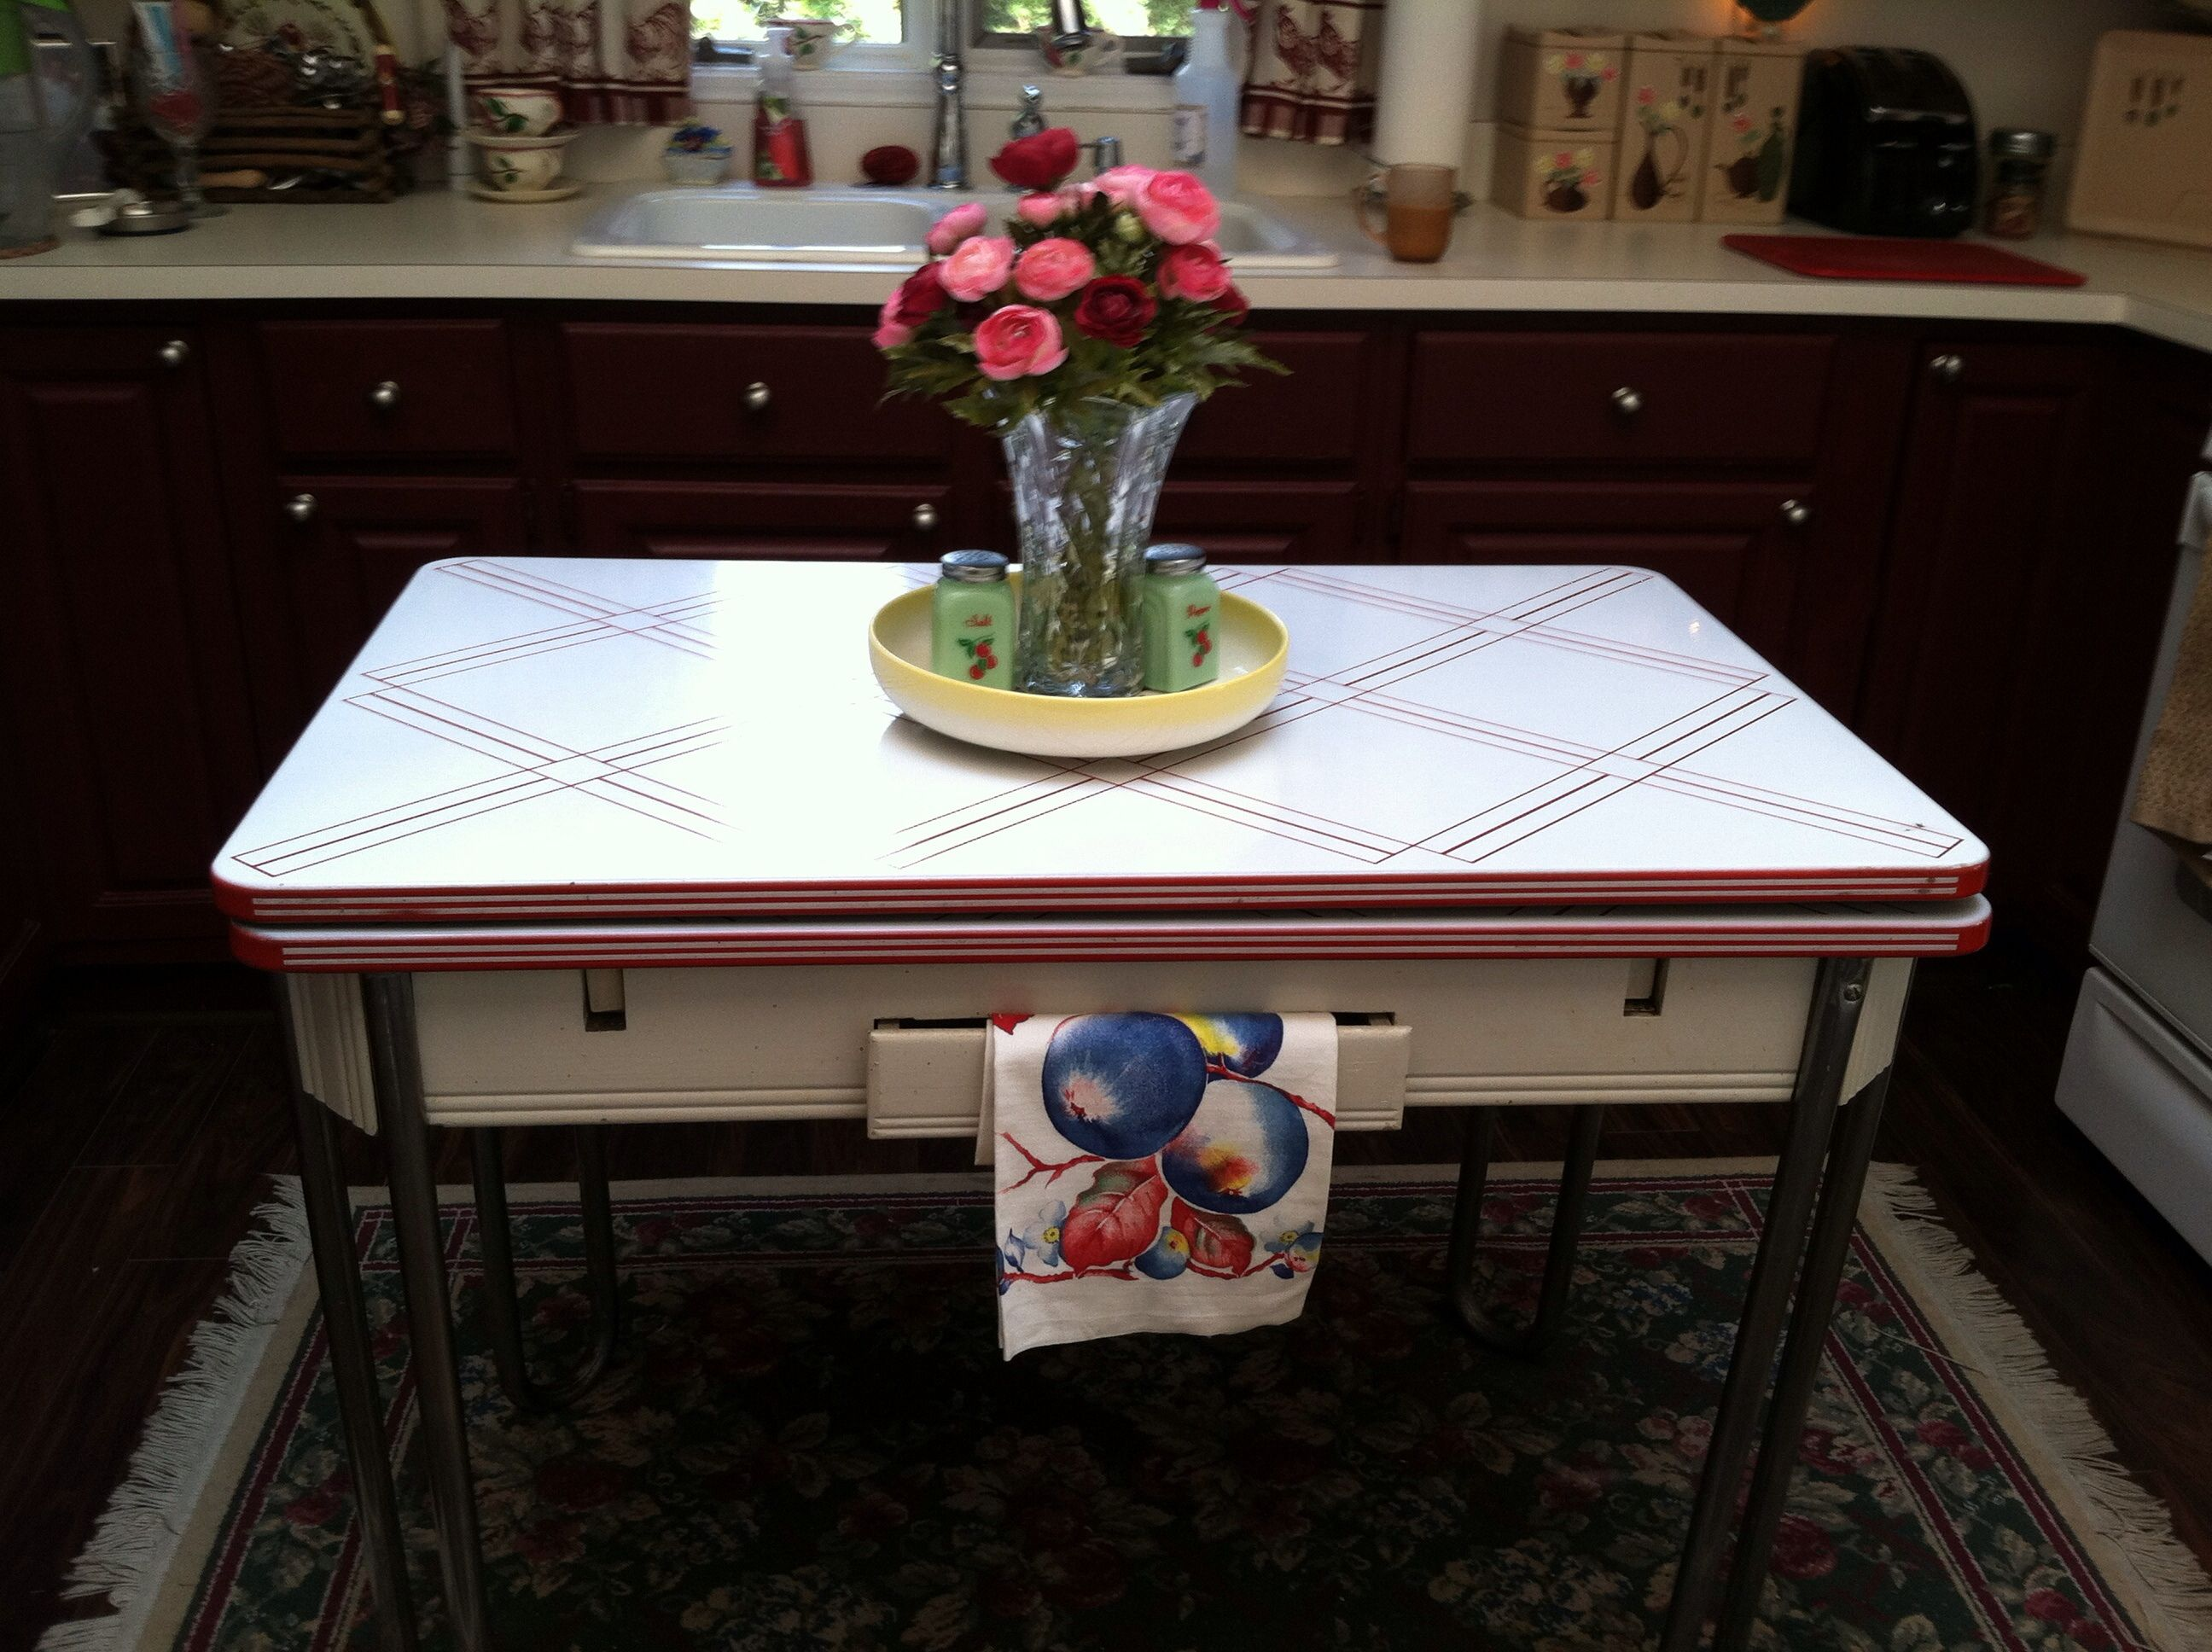 country inspired vintage kitchen with enamel table from the 40's